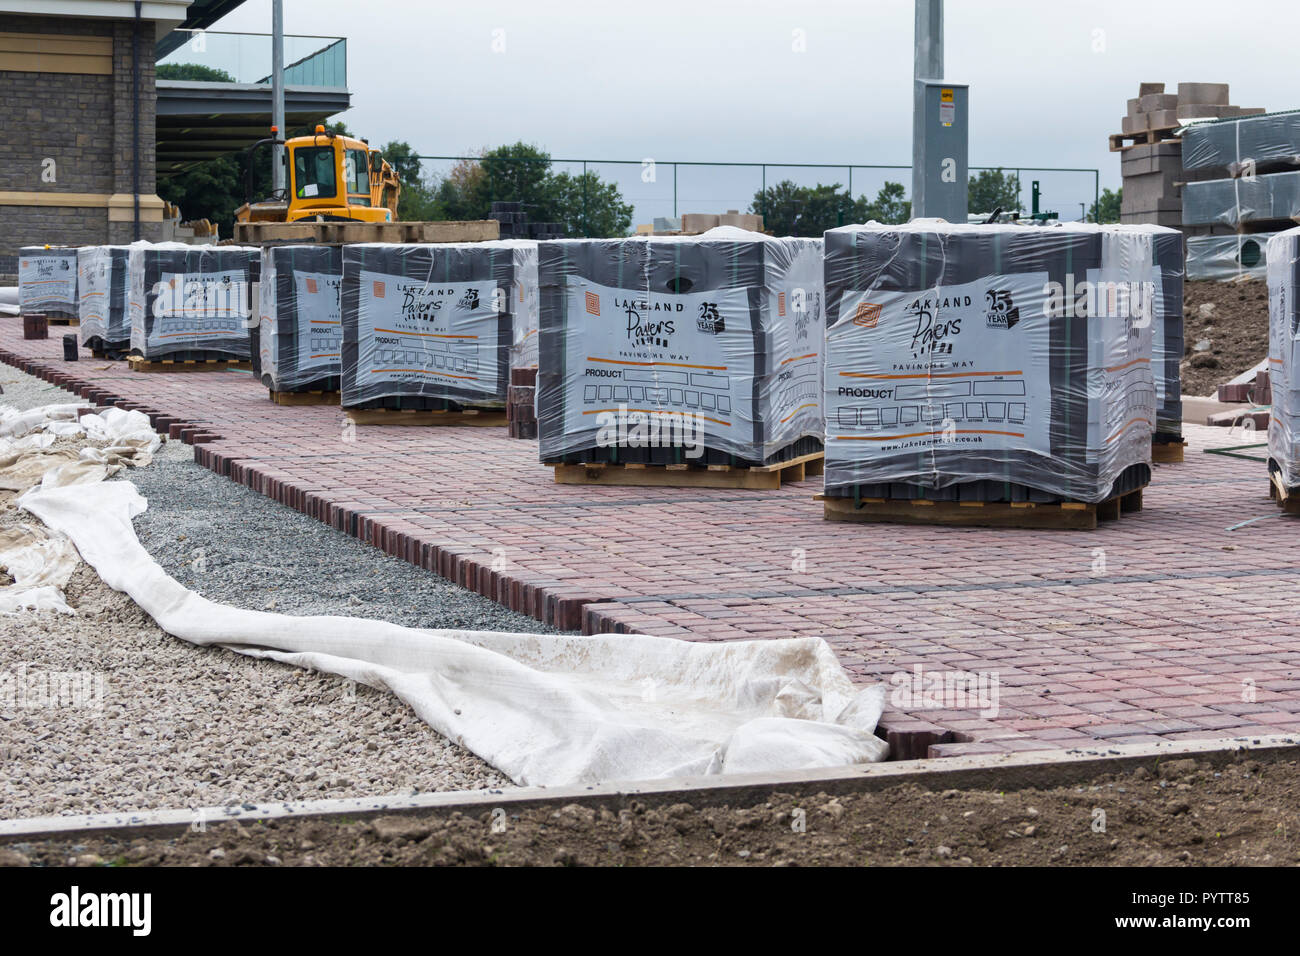 Block paving being laid with sub-base materials visible in the new car park at  Mint Bridge, the new rugby union football ground in Kendal, Cumbria.   Stock Photo